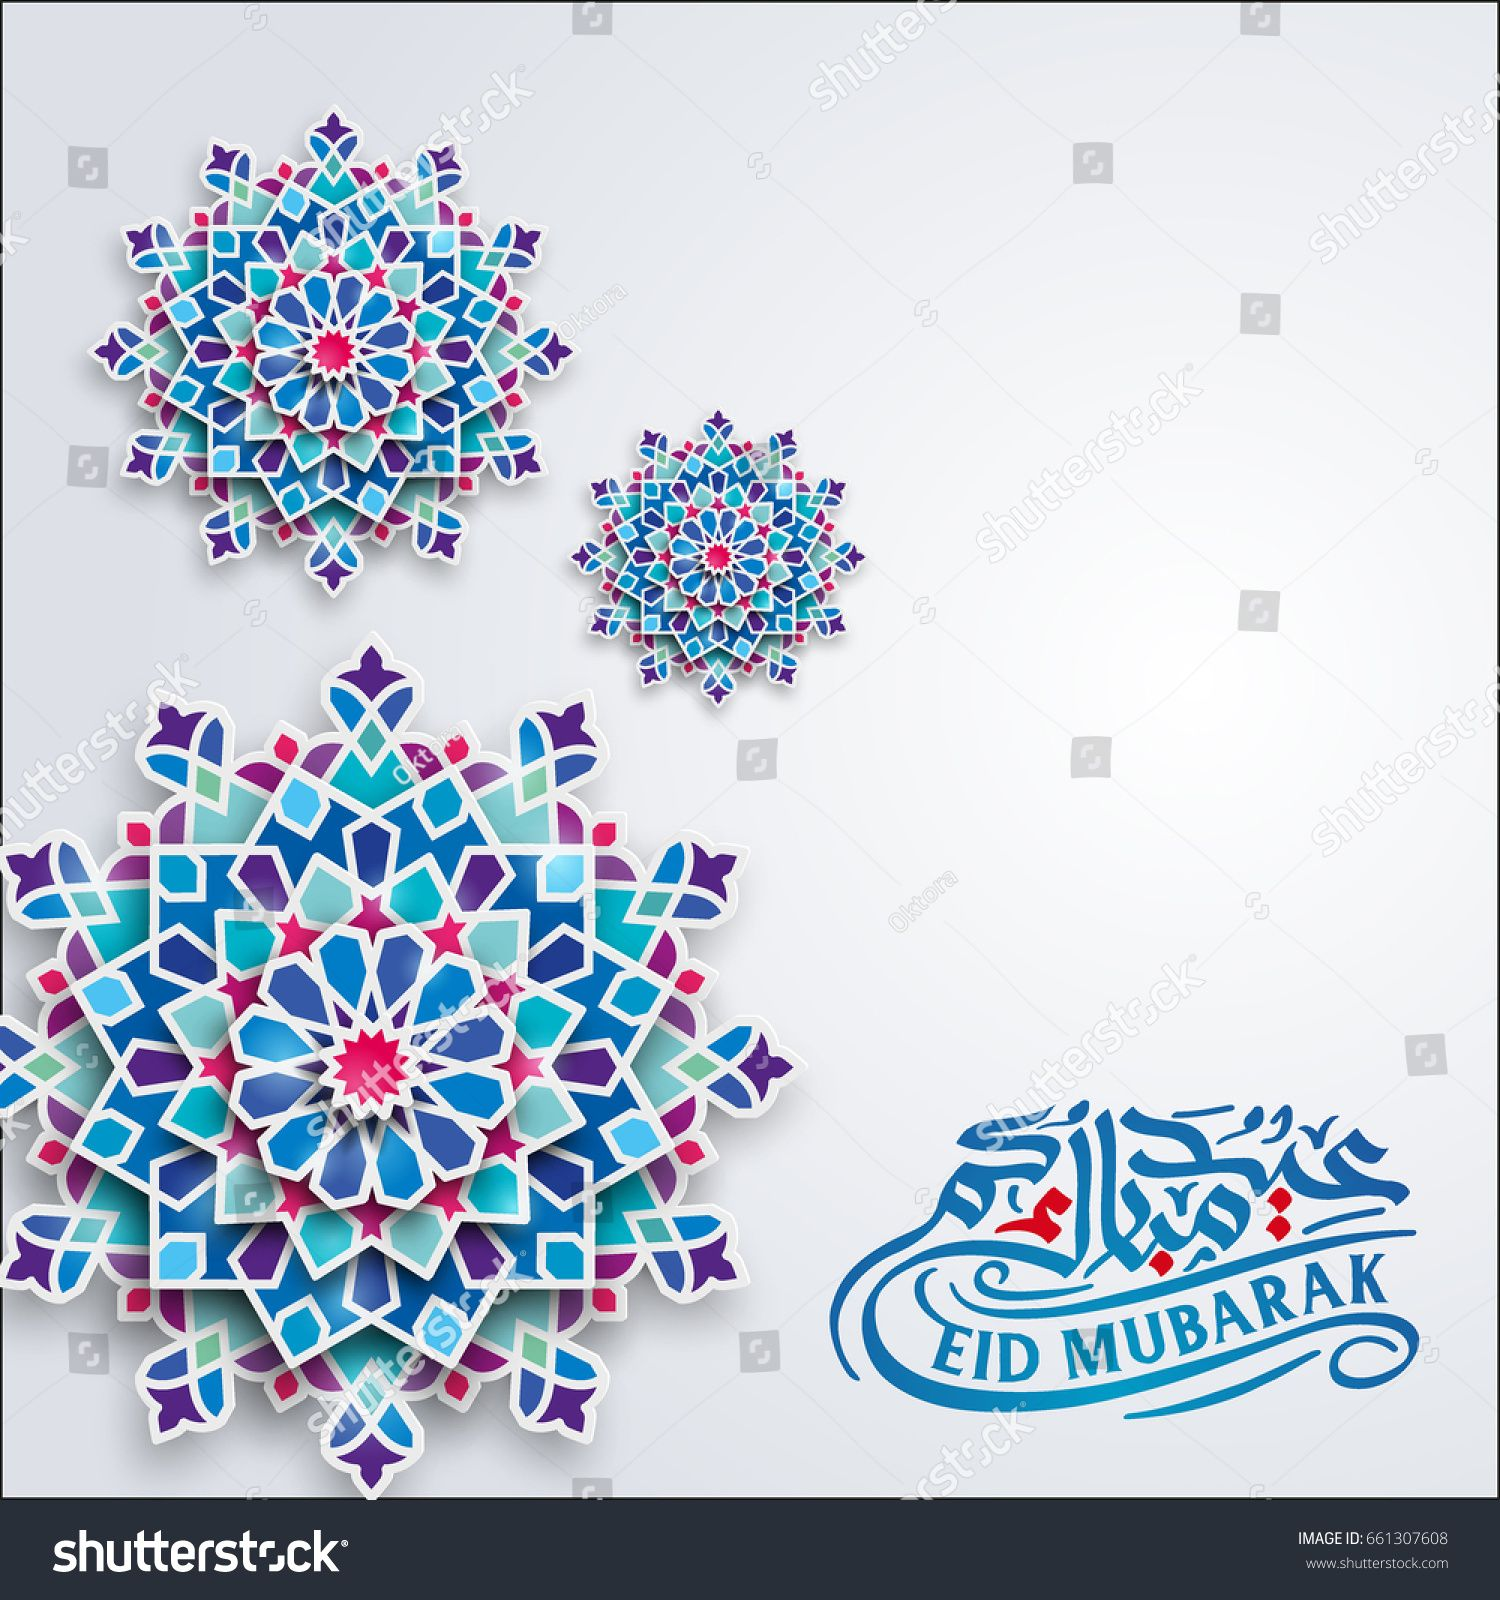 Eid Mubarak Islamic Greeting Card Template With Circle Geometric